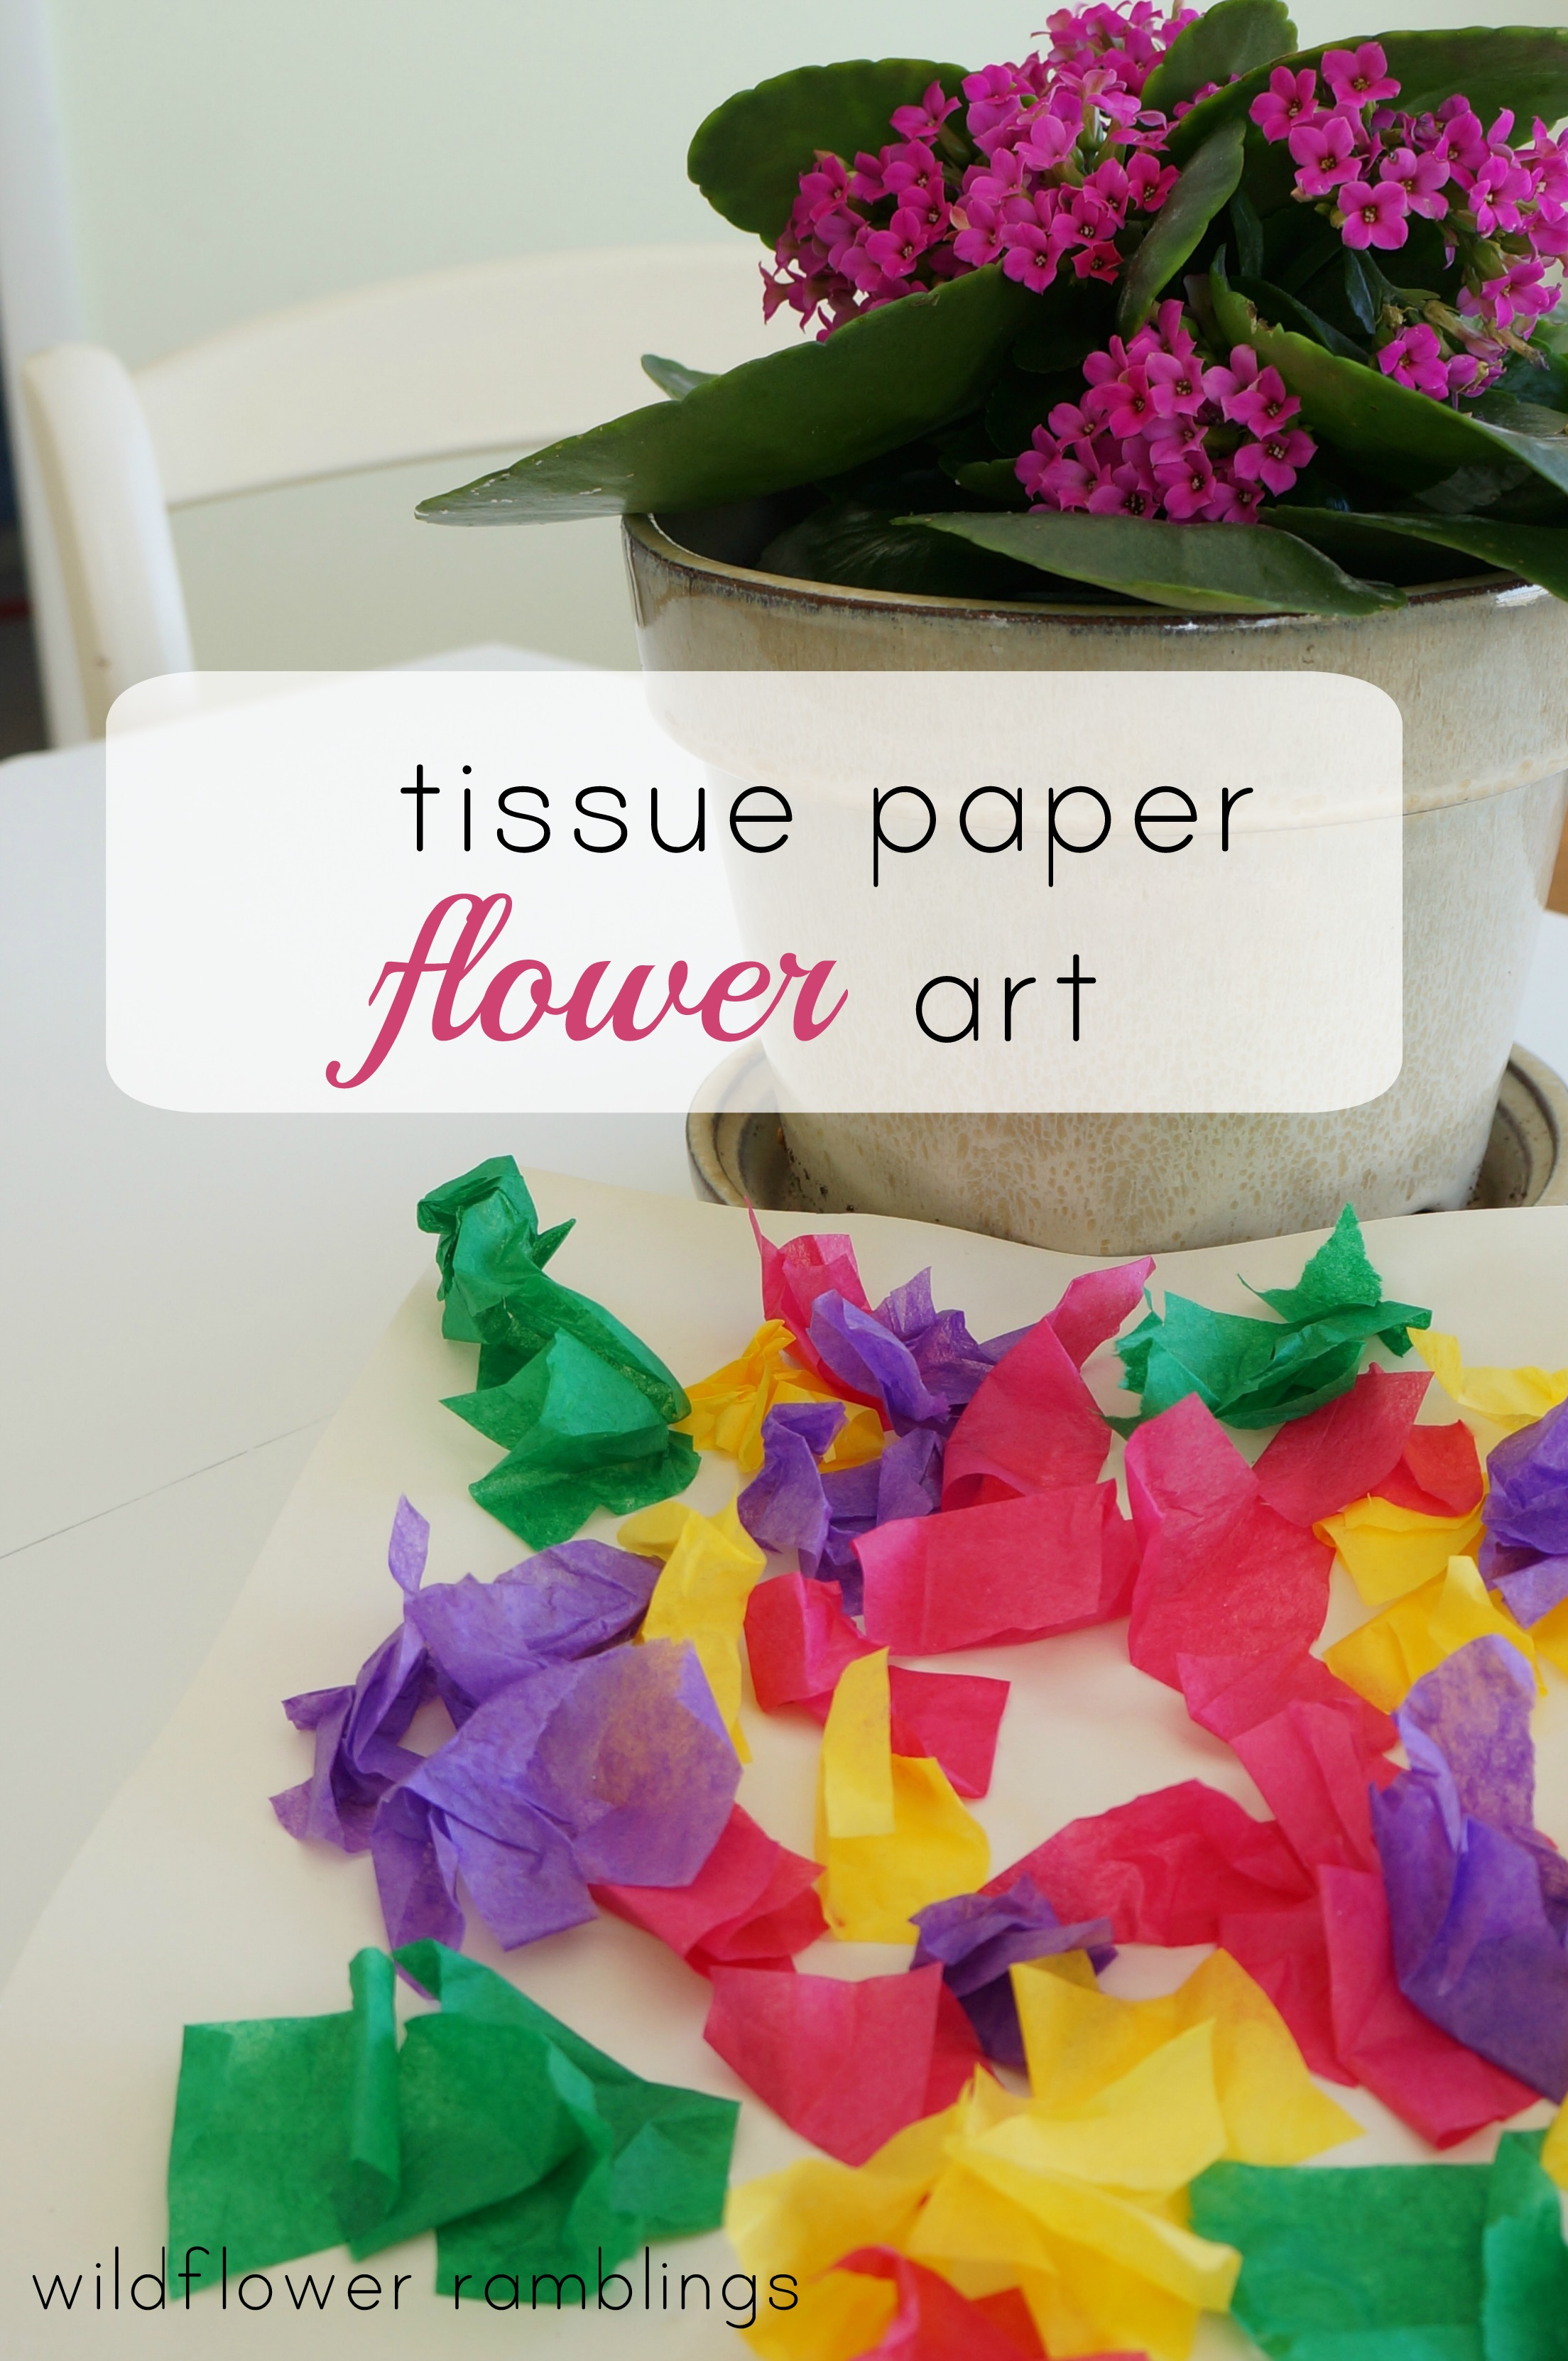 Tissue paper flower art wildflower ramblings mightylinksfo